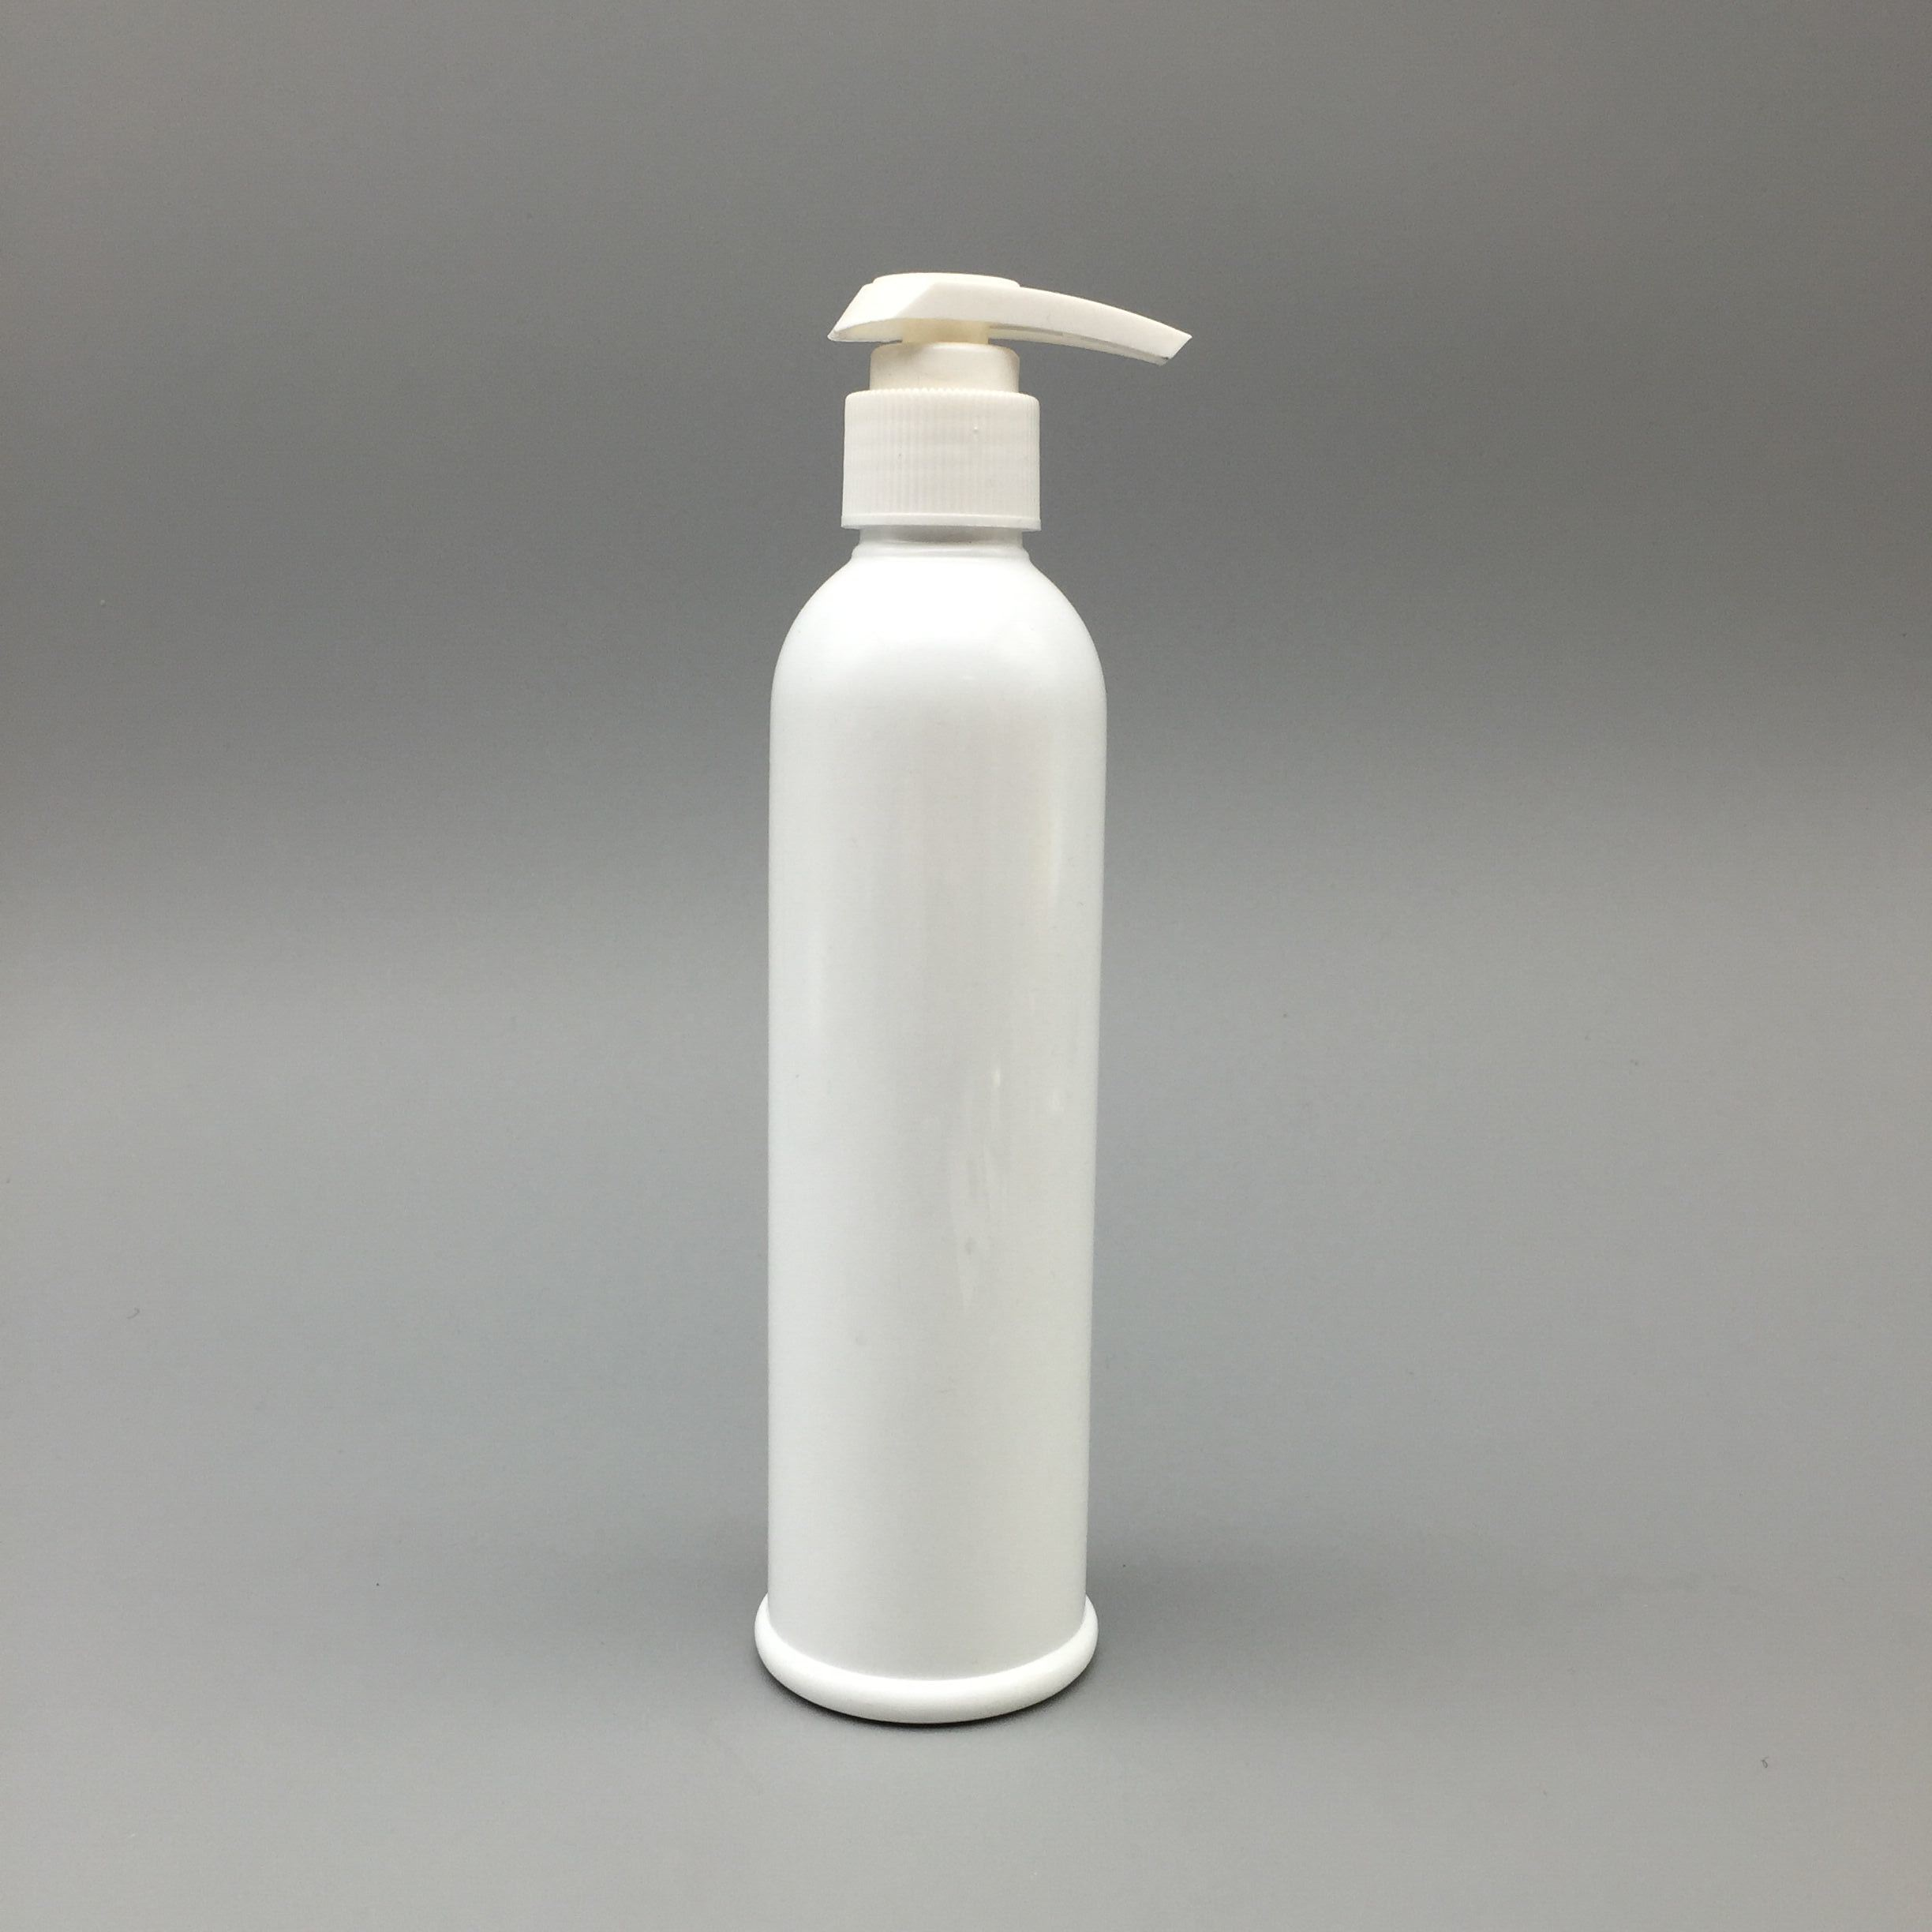 250ml White Pet Bottle with Plastic Pump